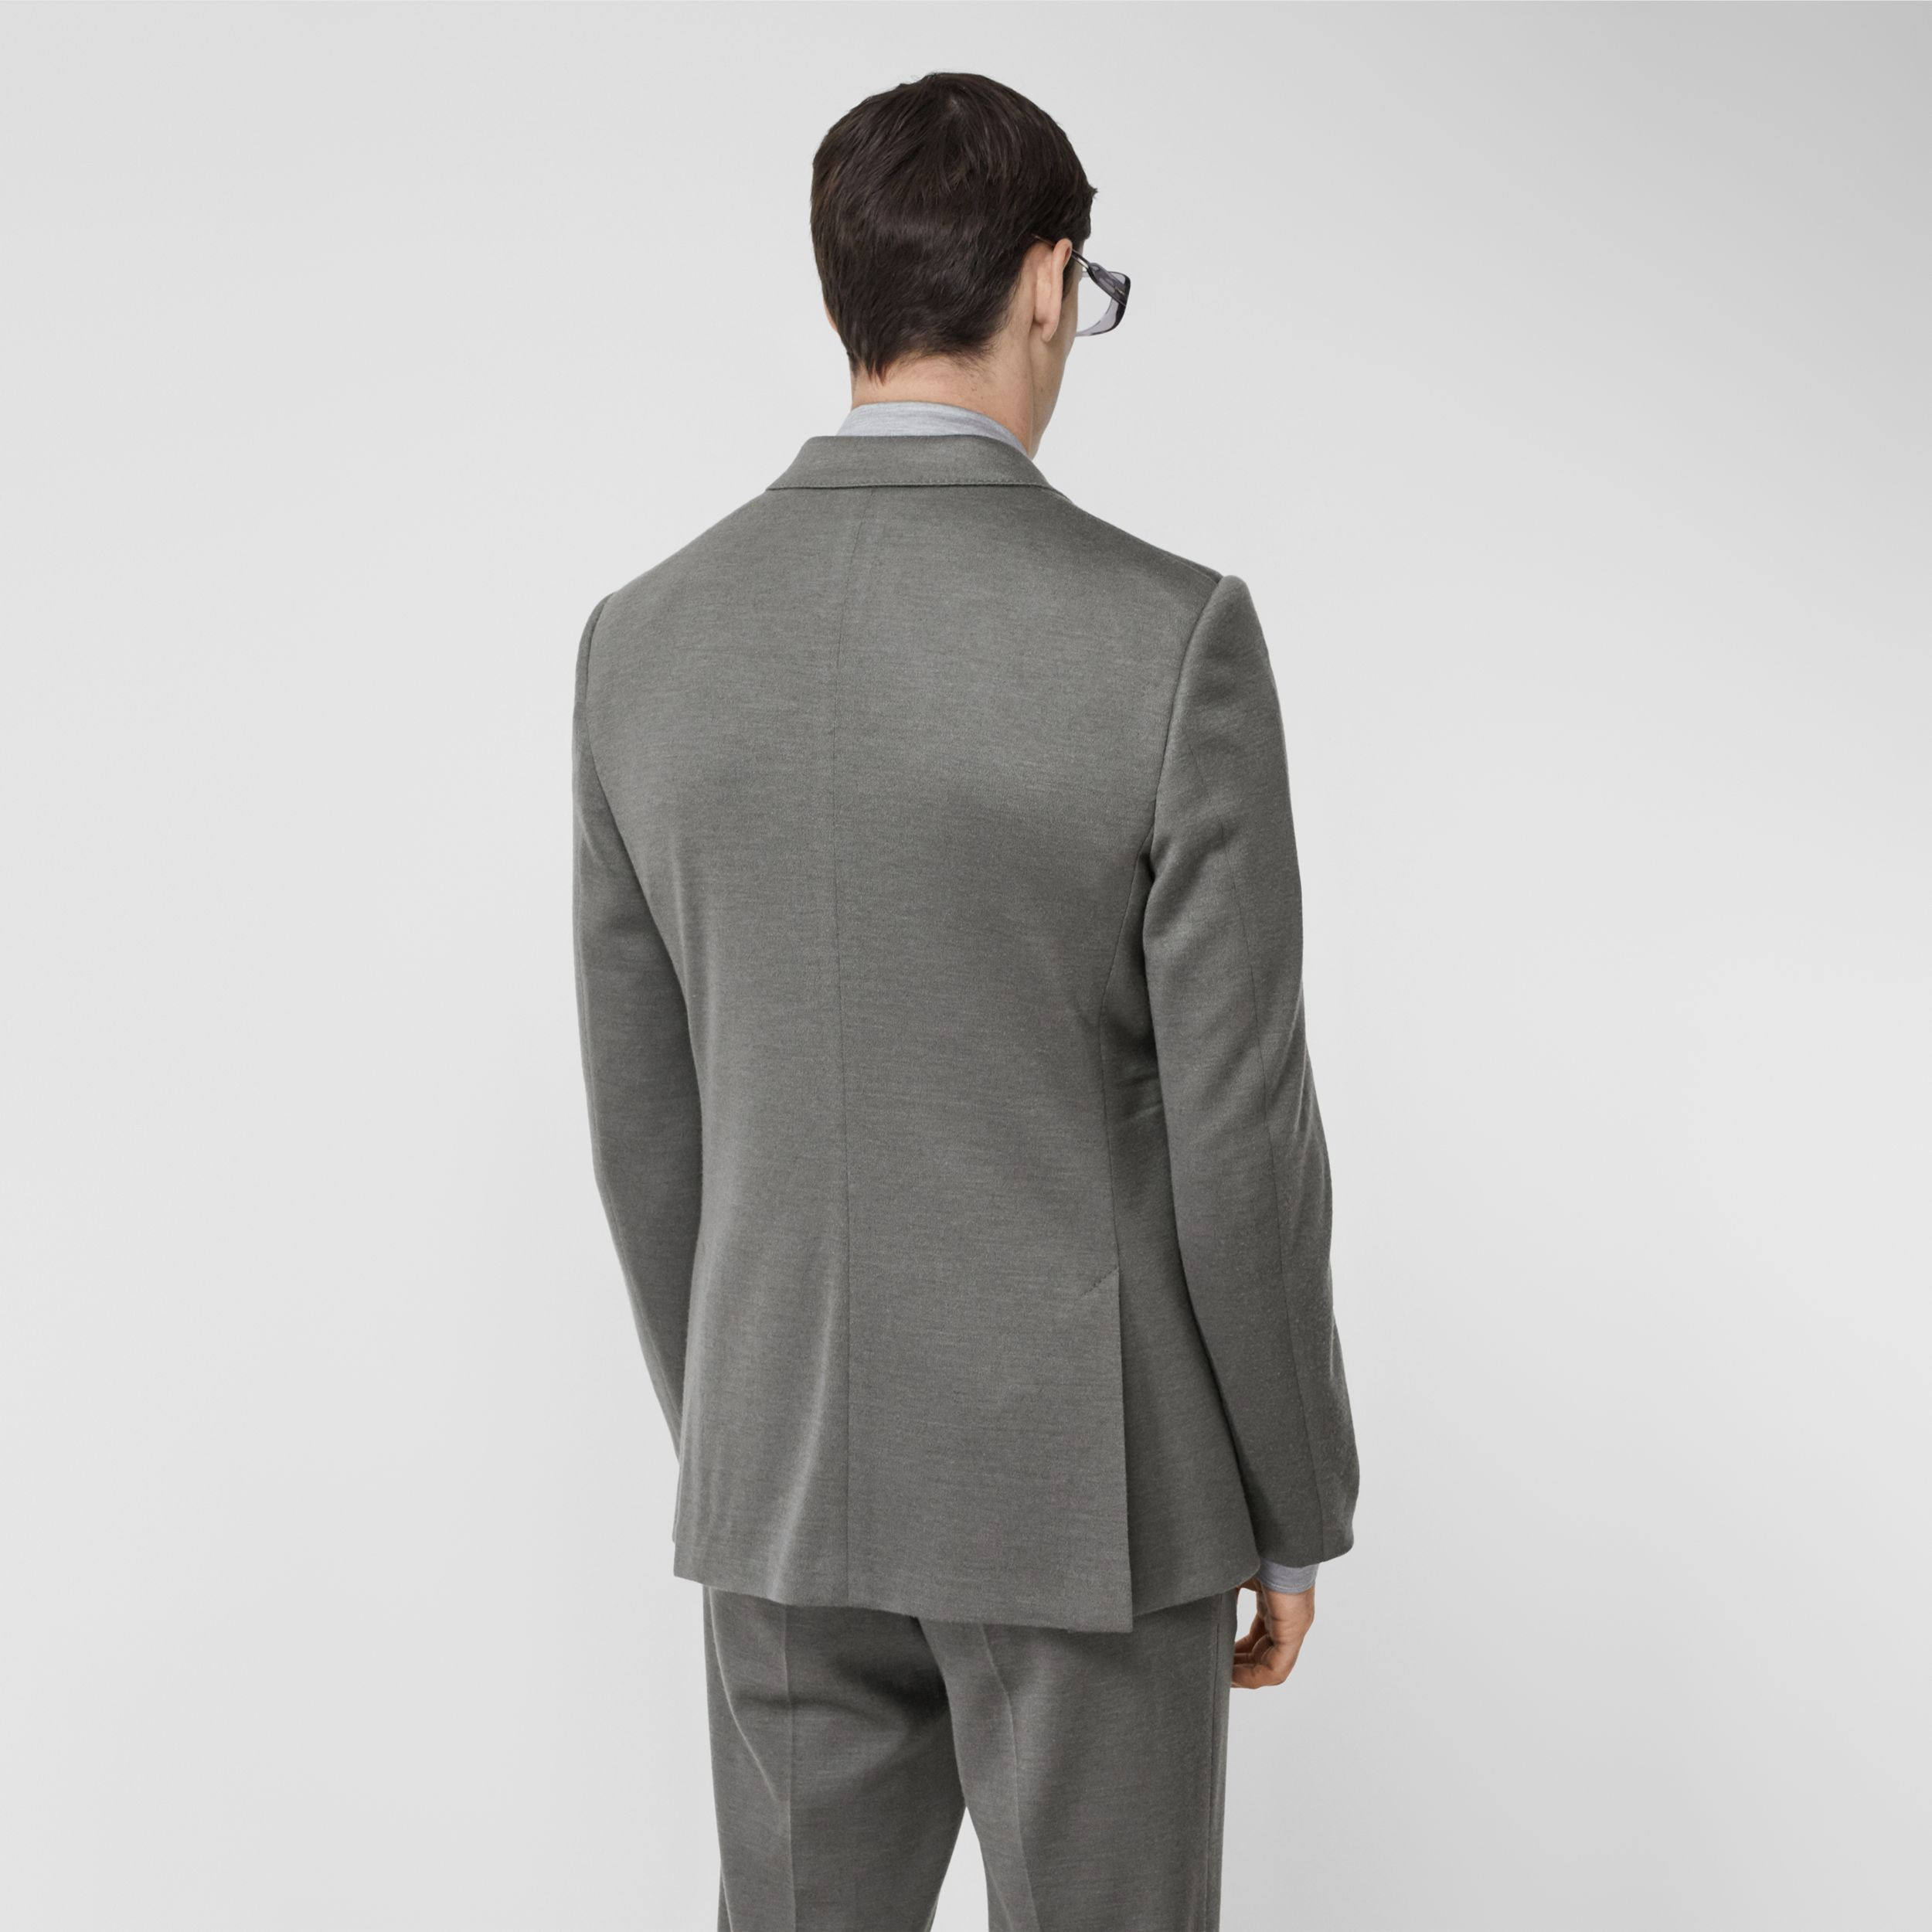 English Fit Cashmere Silk Jersey Tailored Jacket in Cloud Grey - Men | Burberry - 3